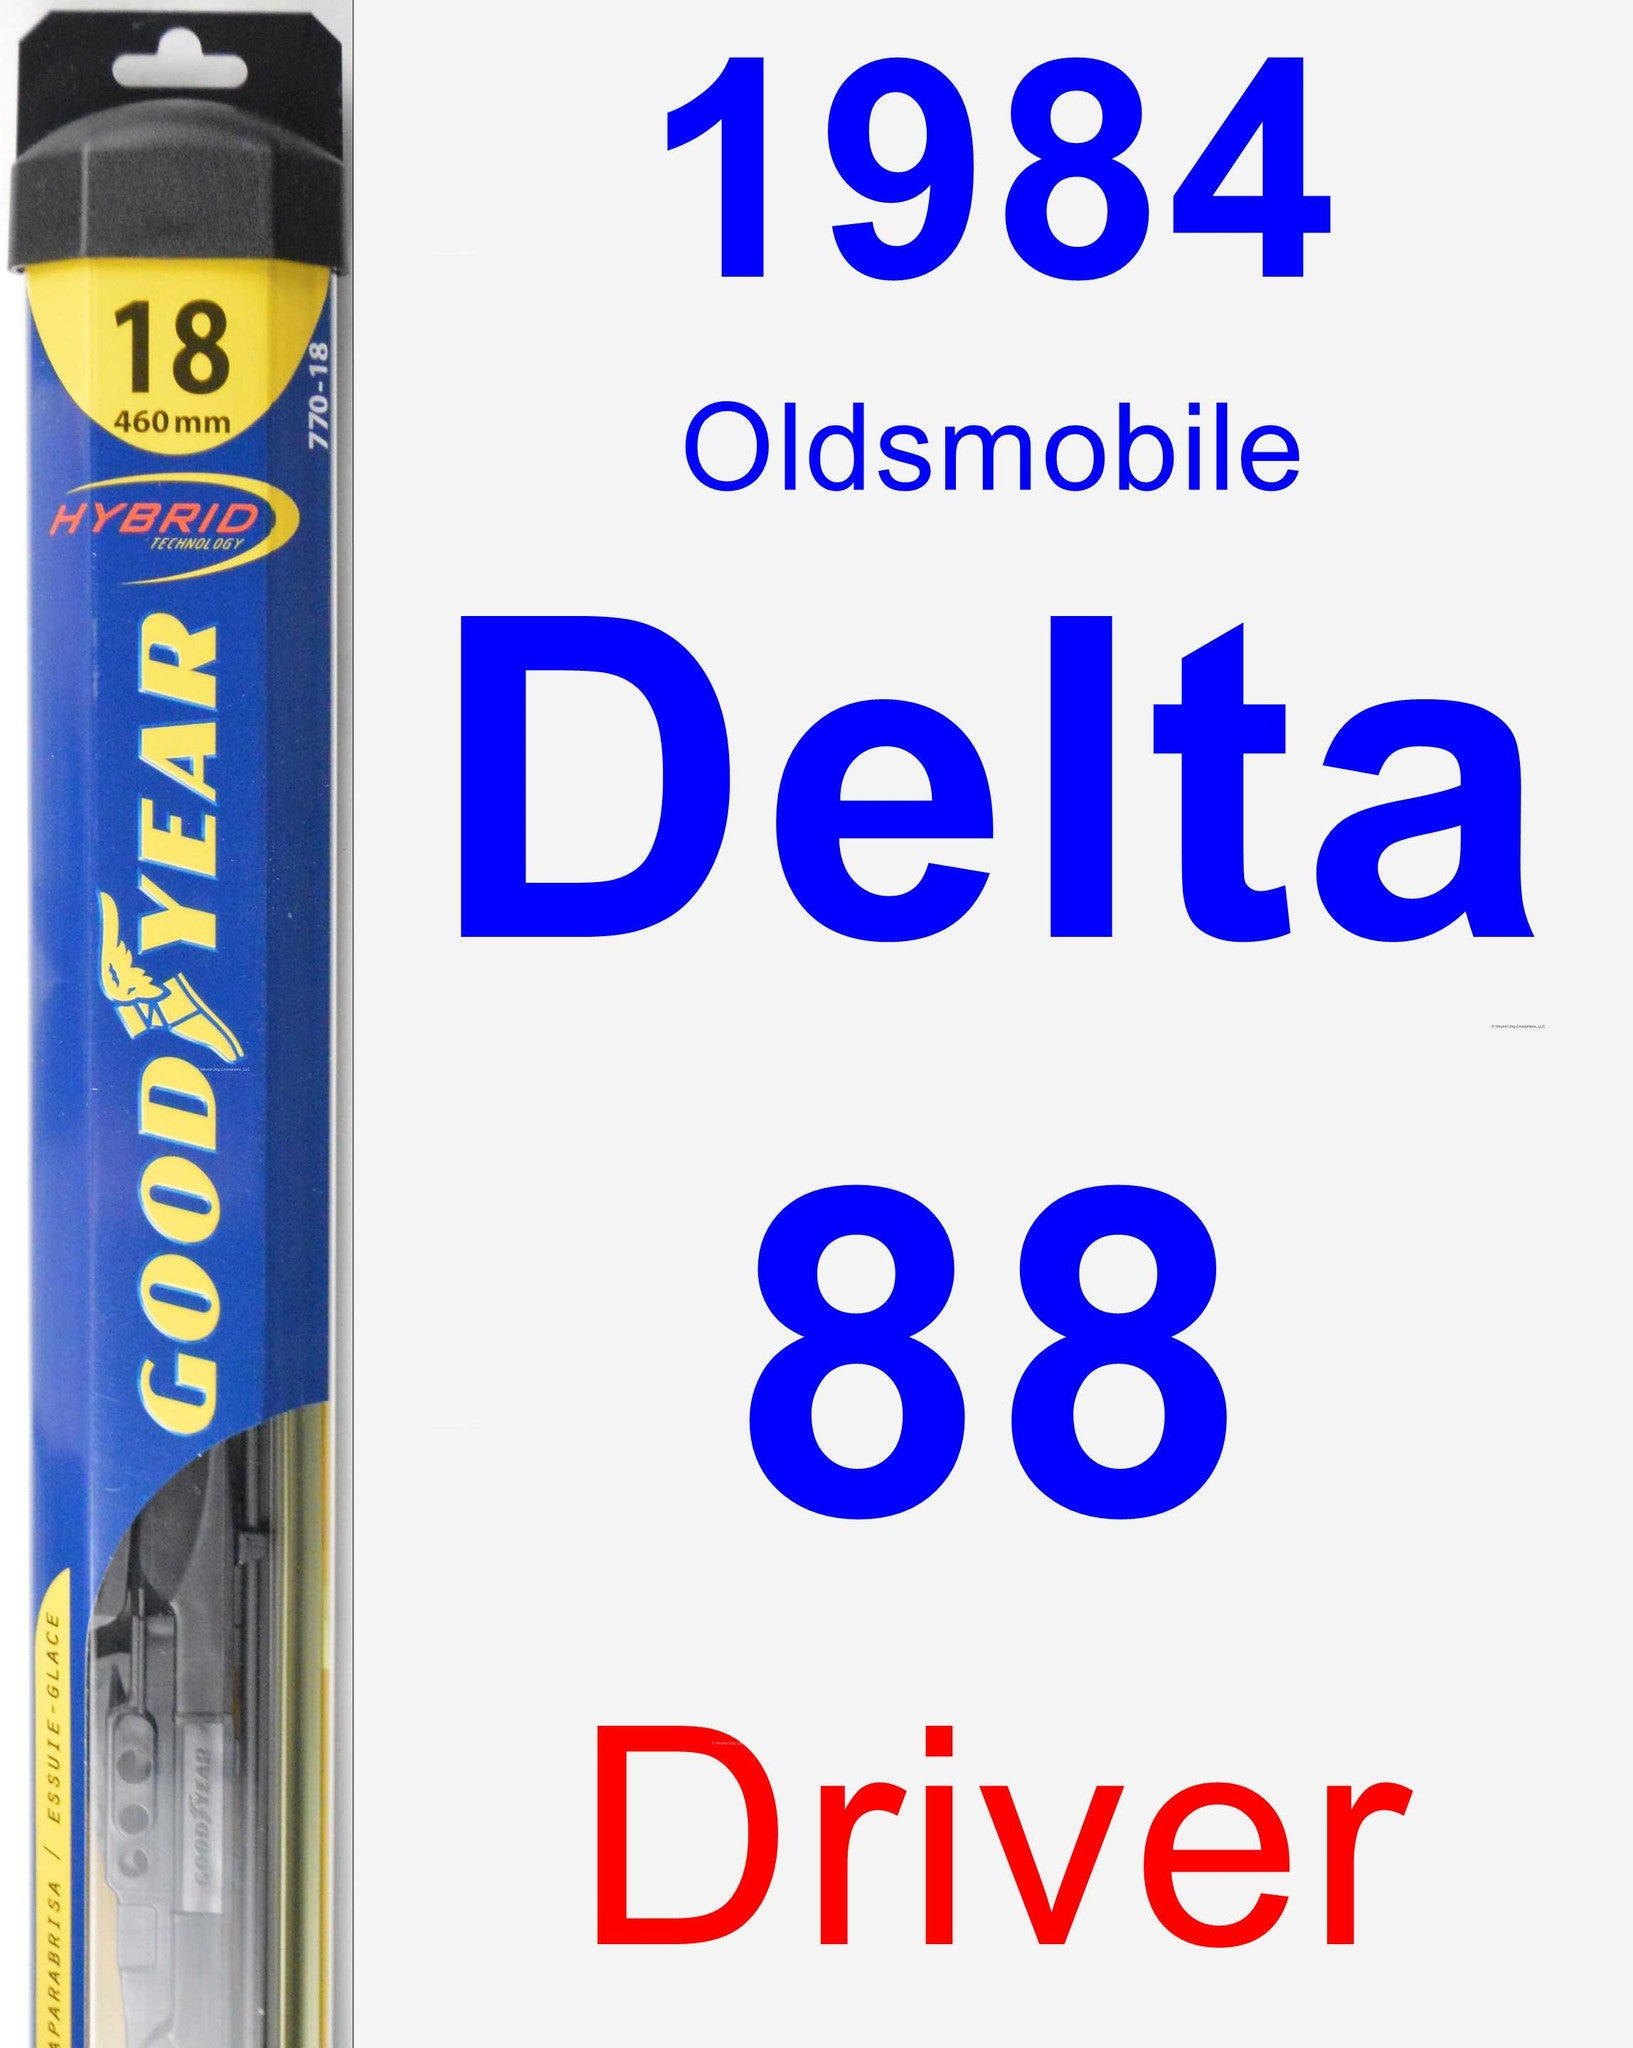 Driver Wiper Blade for 1984 Oldsmobile Delta 88 - Hybrid